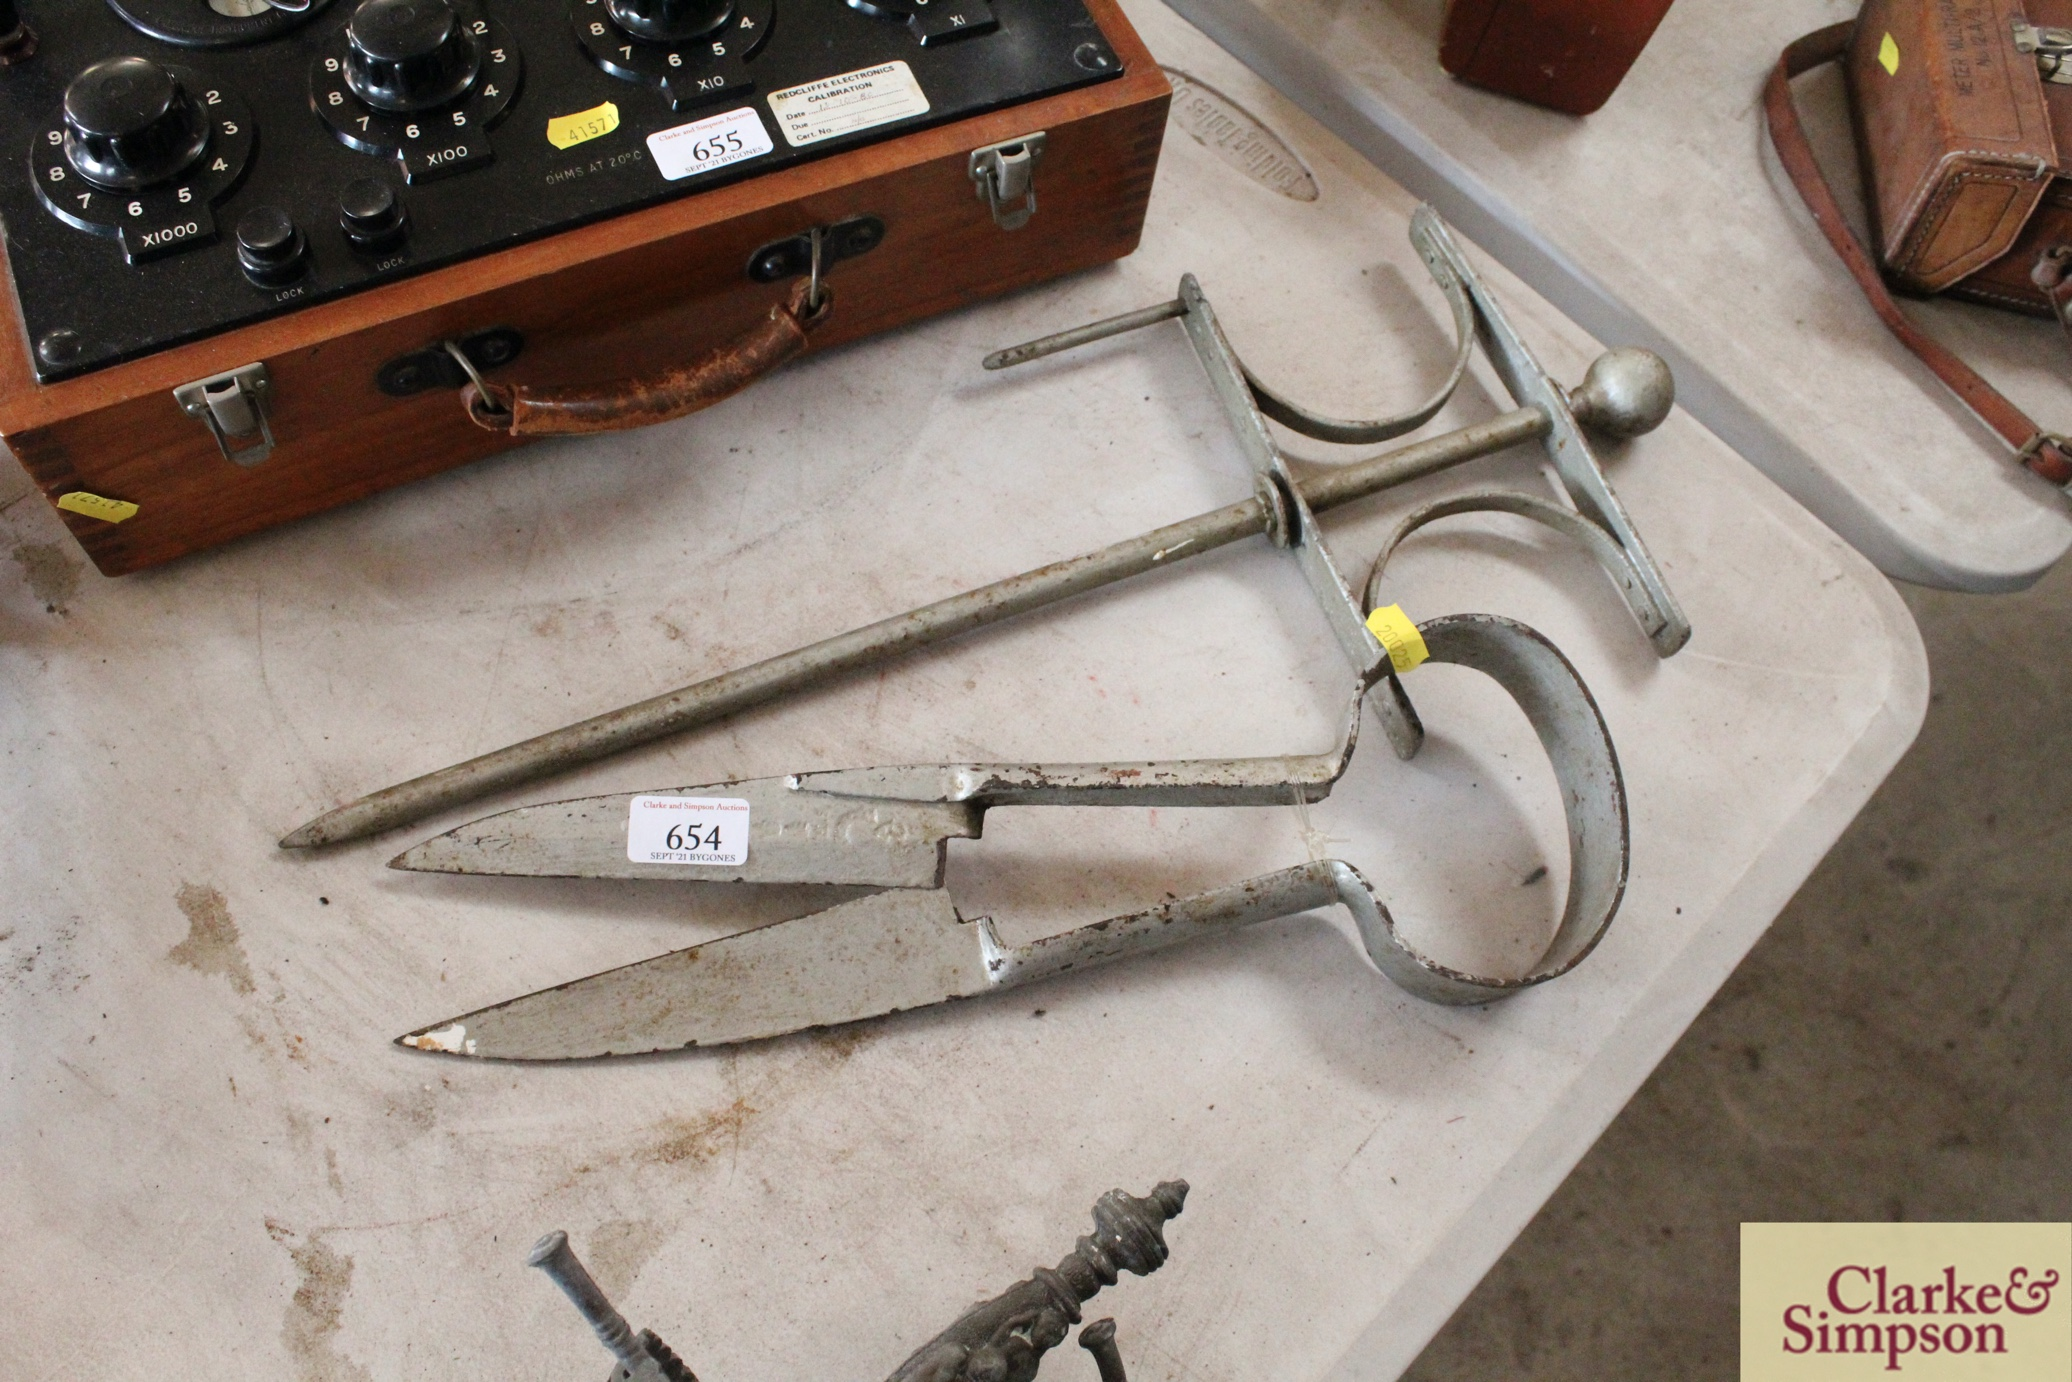 A pair of vintage thatcher's shears and a garden